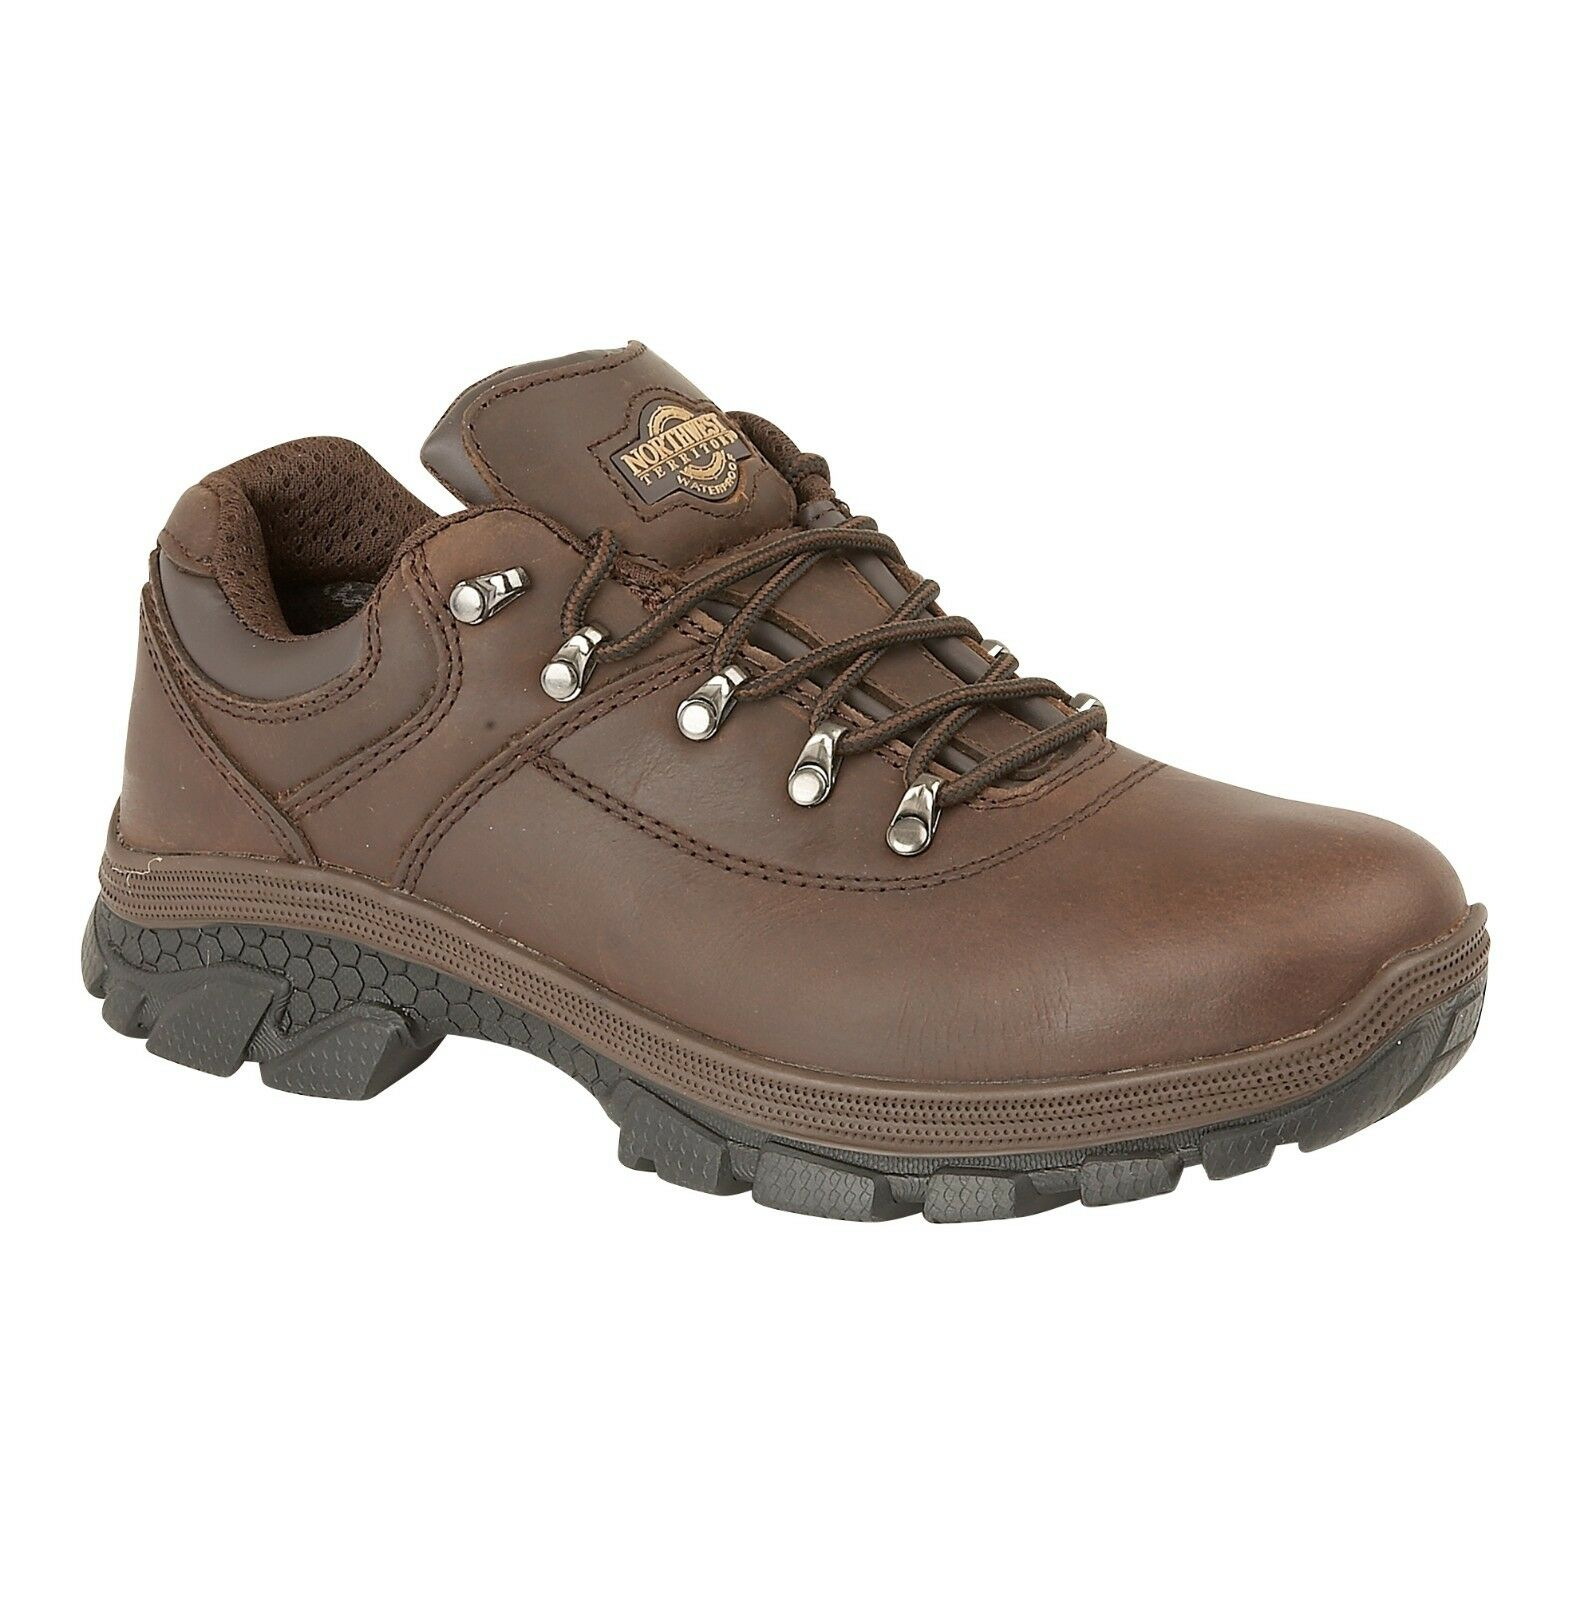 Uomo Branded Ankle Leather Walking Hiking Waterproof Ankle Branded Boots Trainers Shoes Size 217f0d